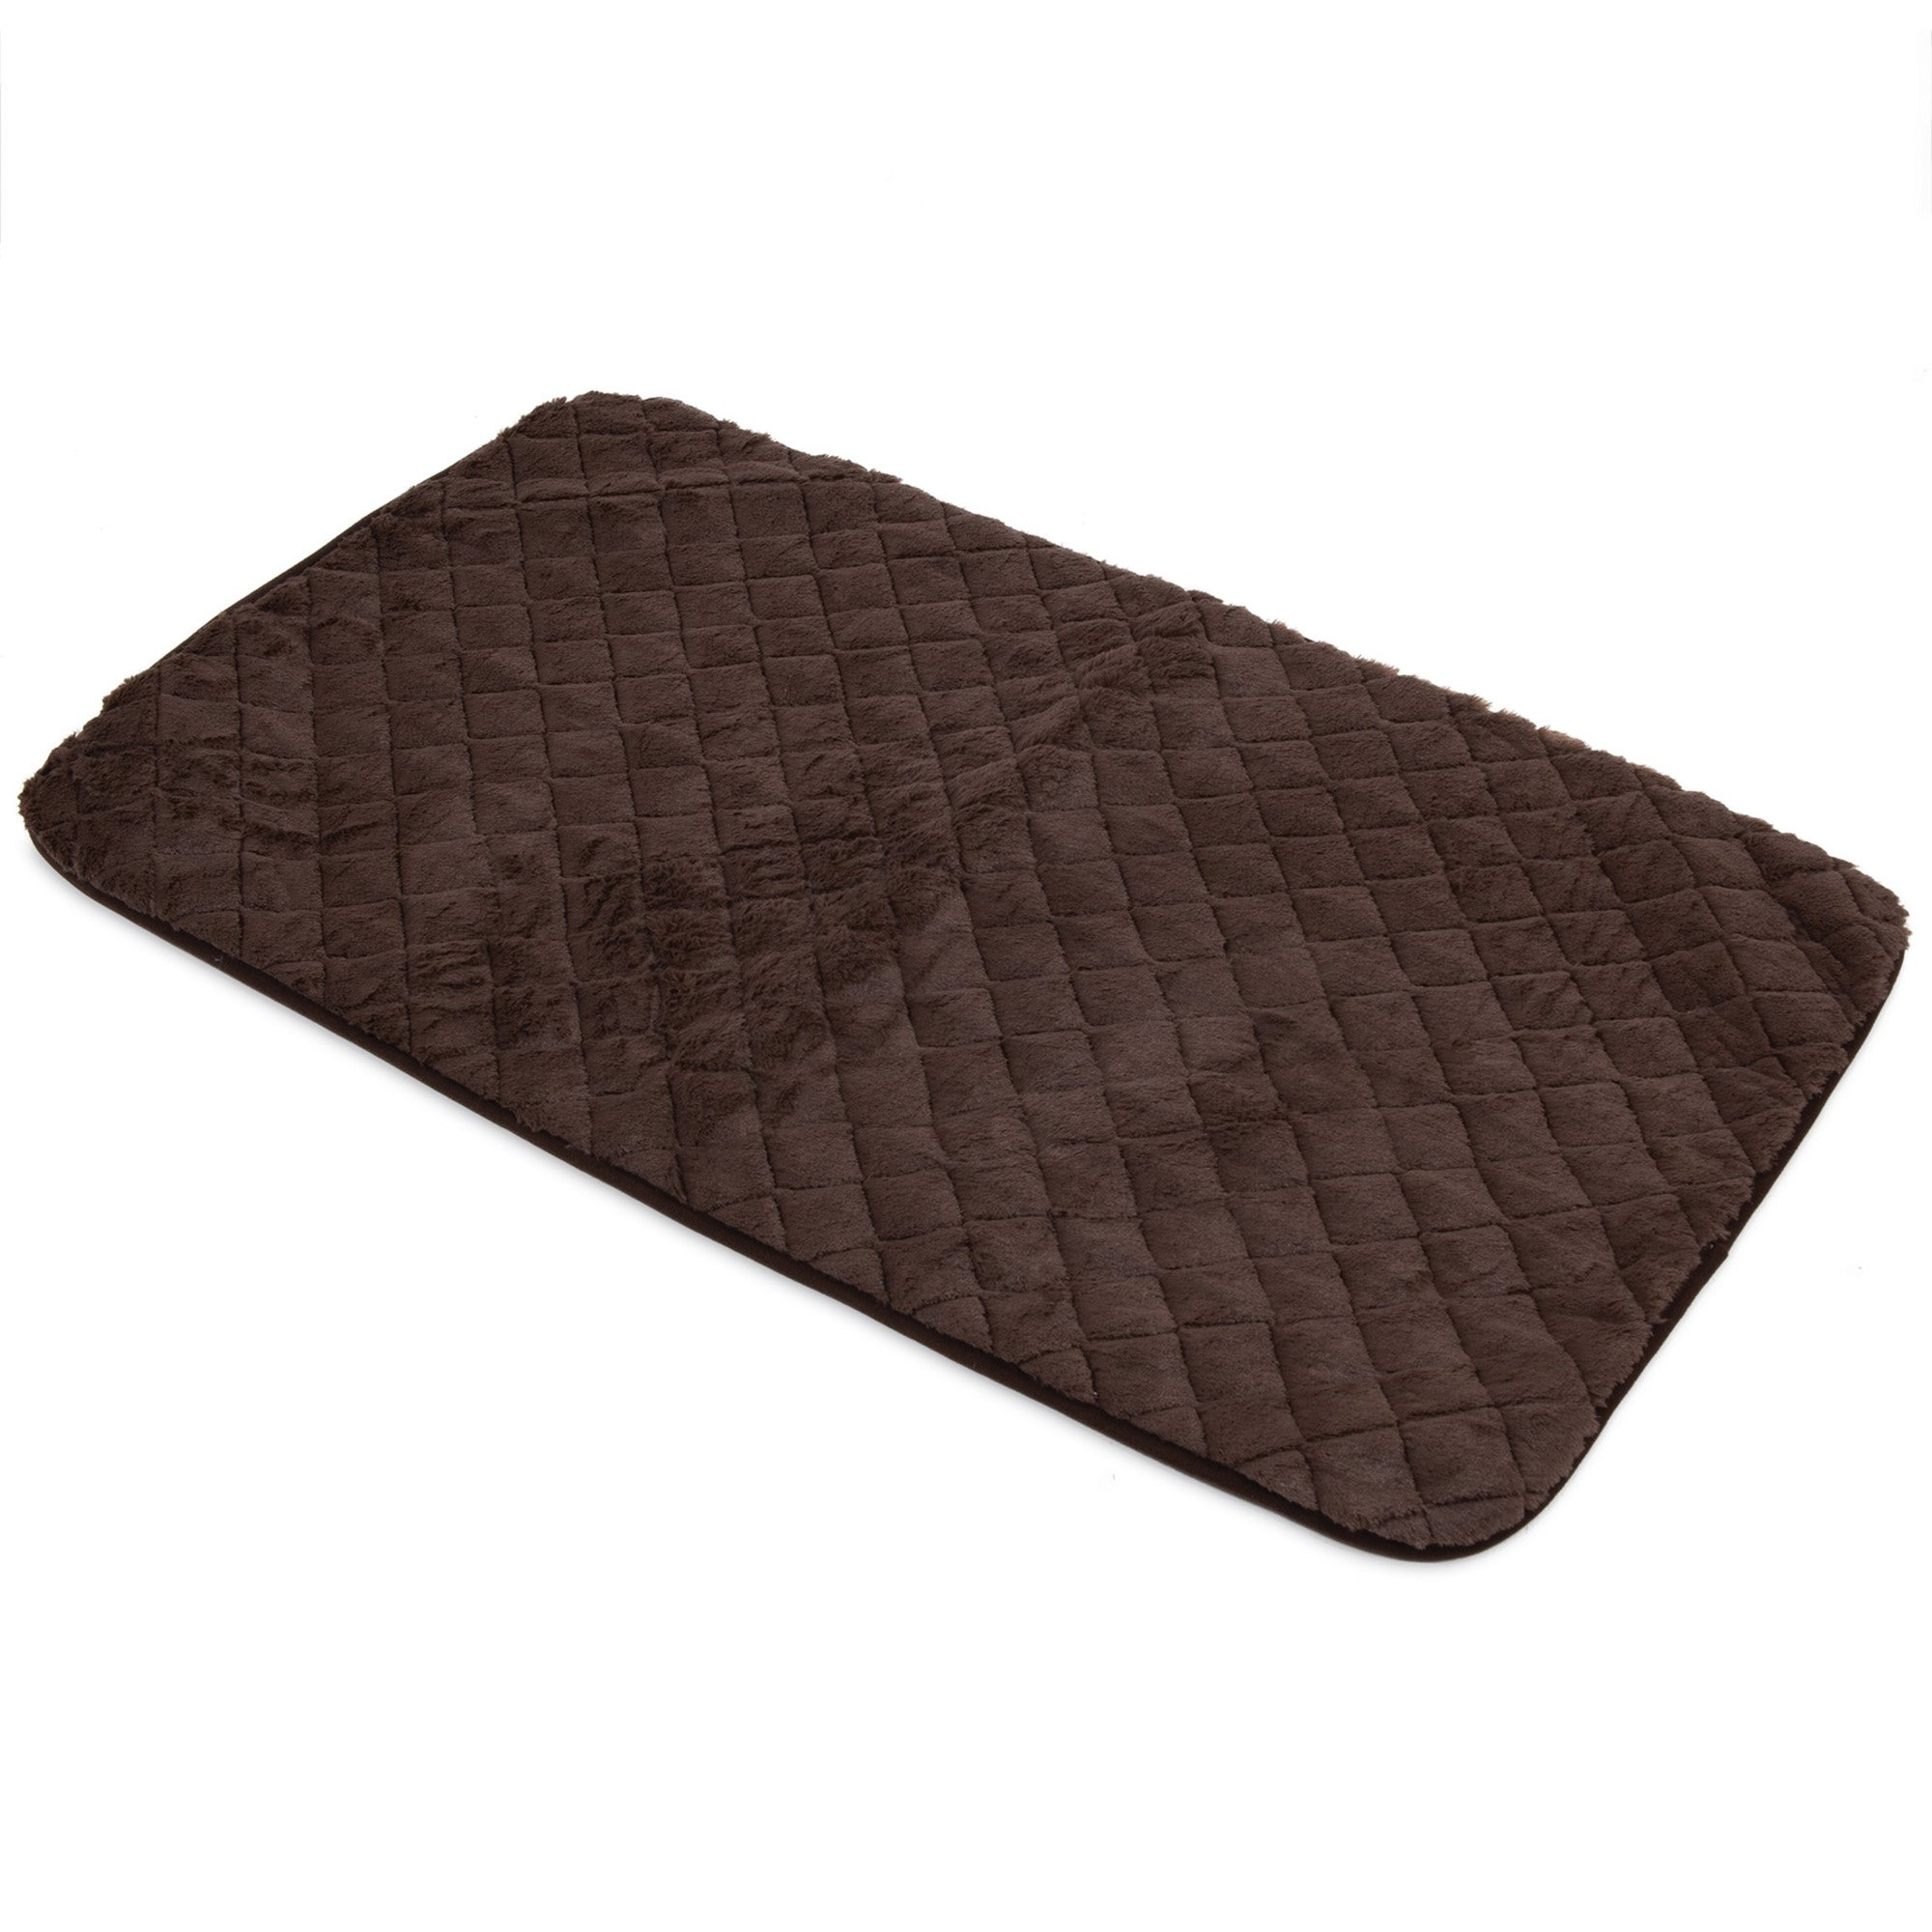 Precision Pet SnooZZy Sleeper Chocolate Brown Crate Mat